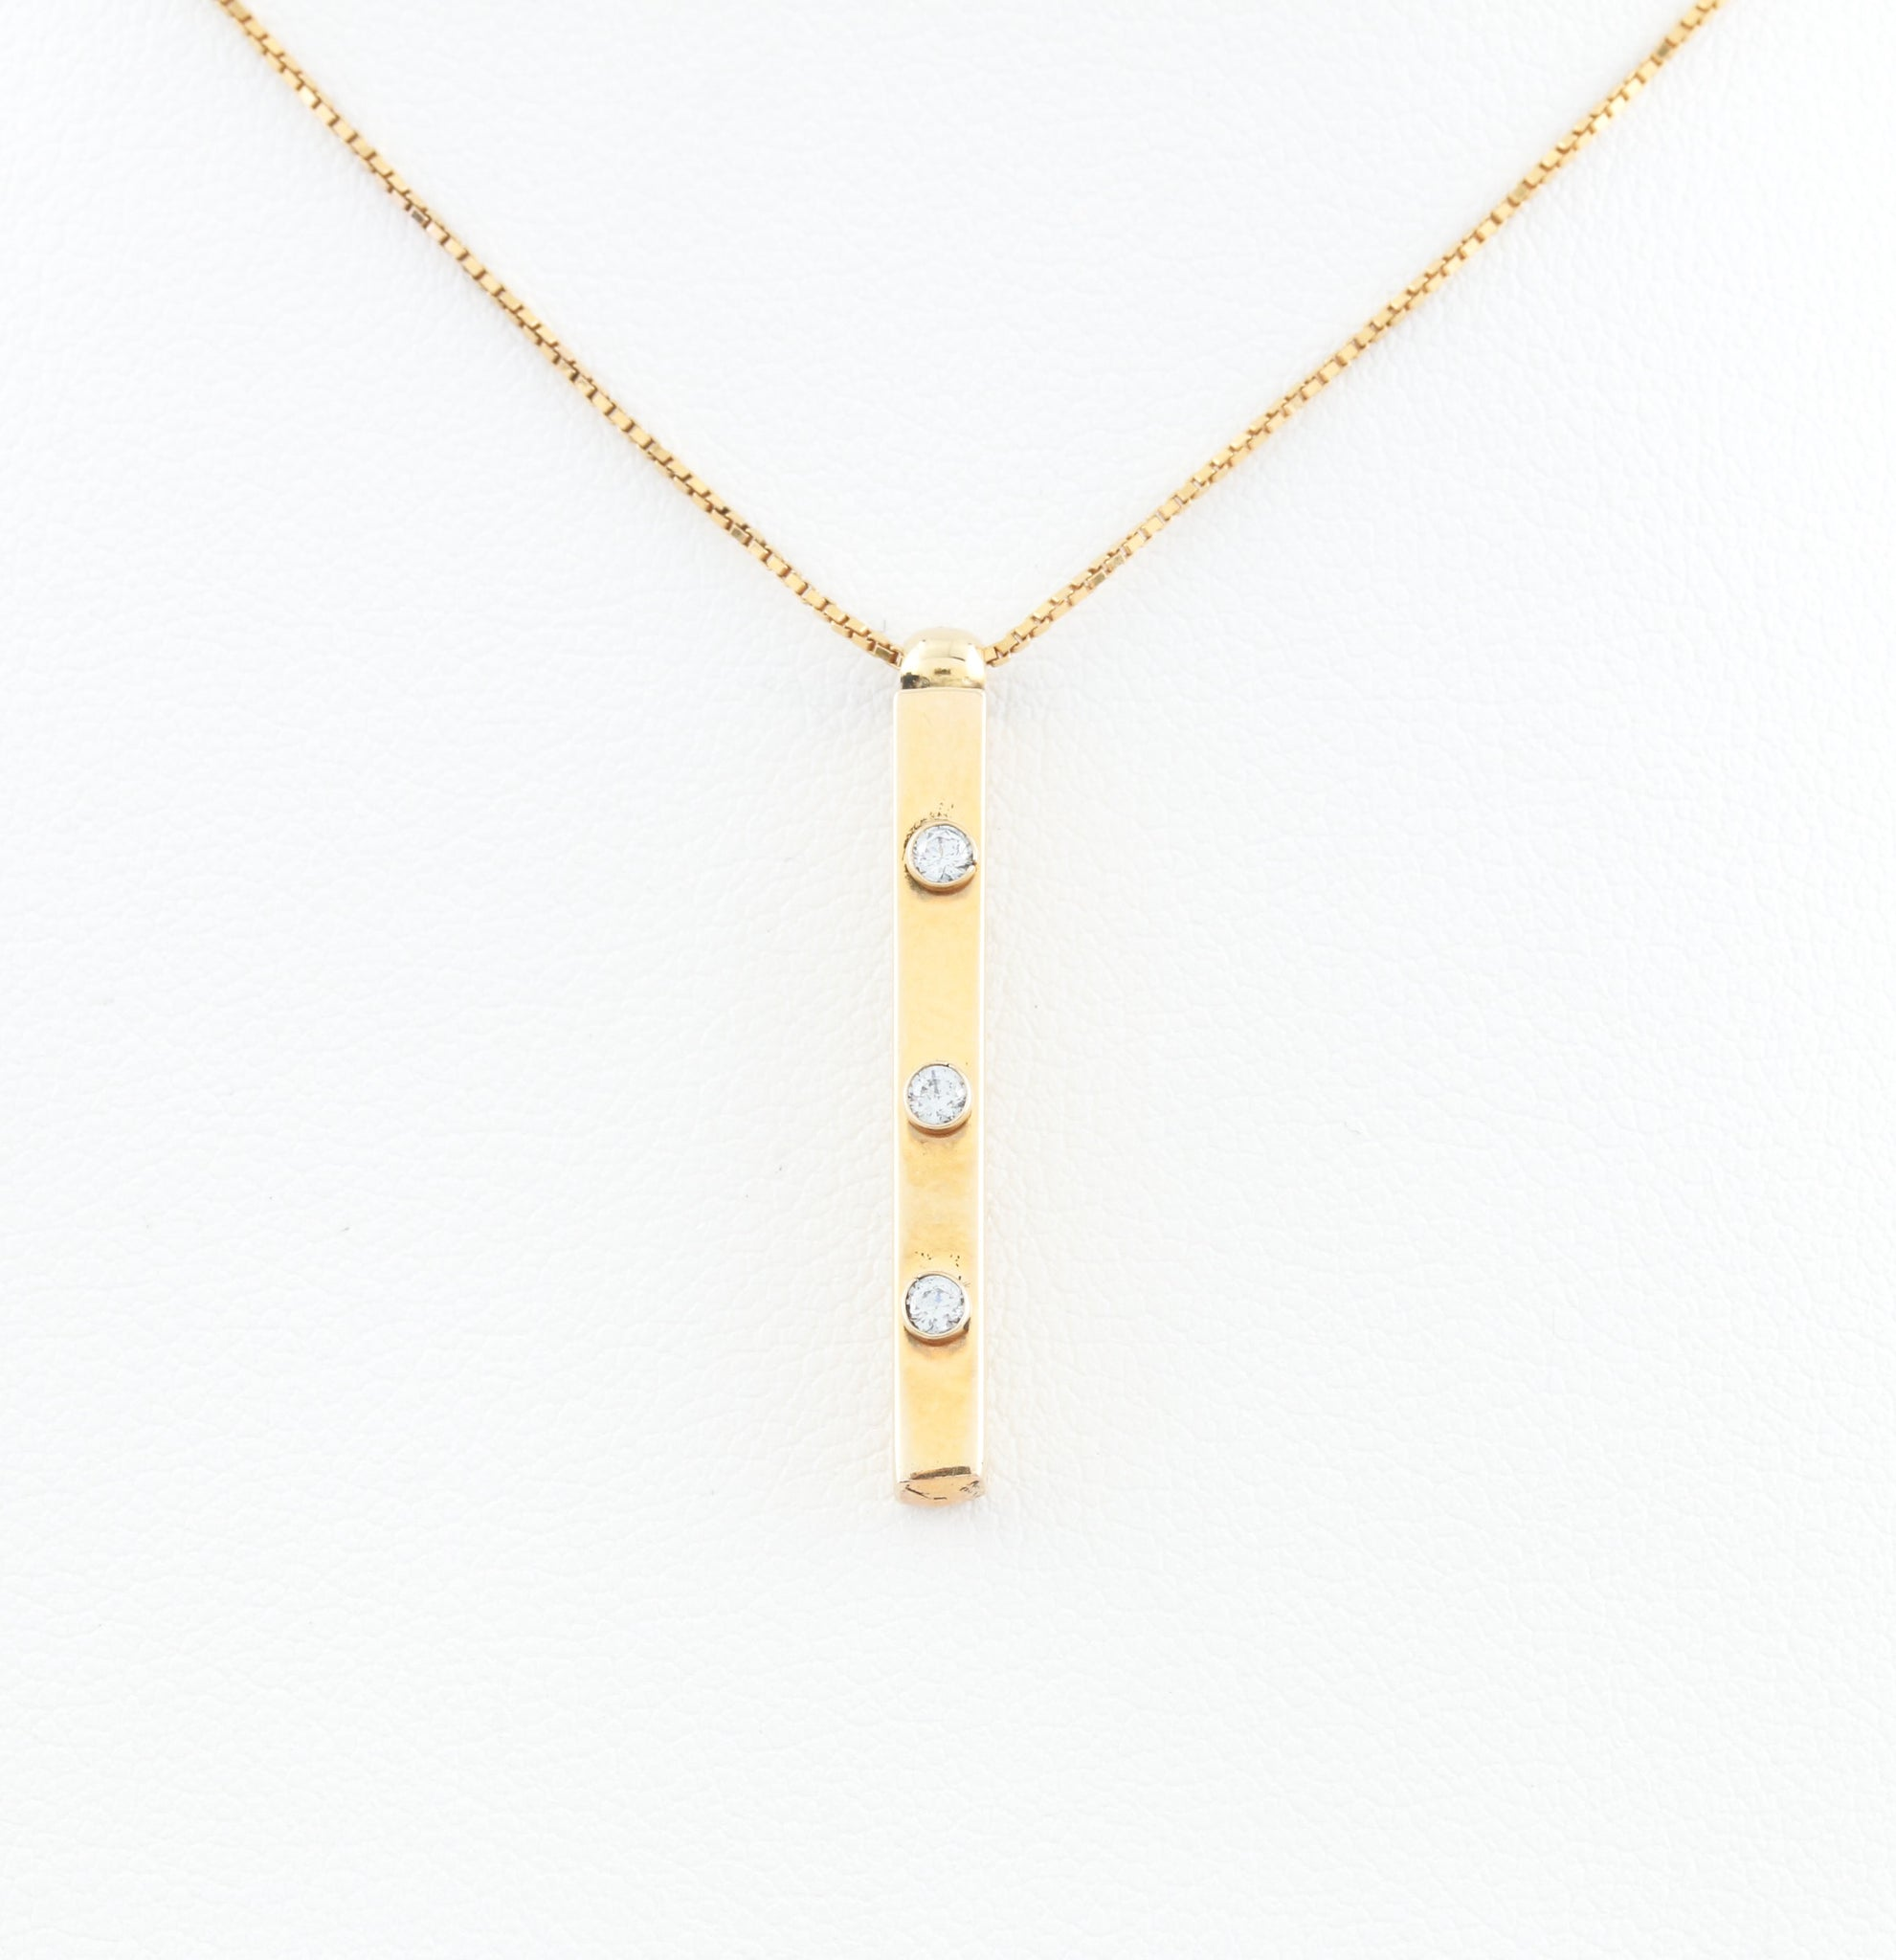 *SOLD* Three Diamonds in Yellow Gold Bar Necklace - Sindur Style